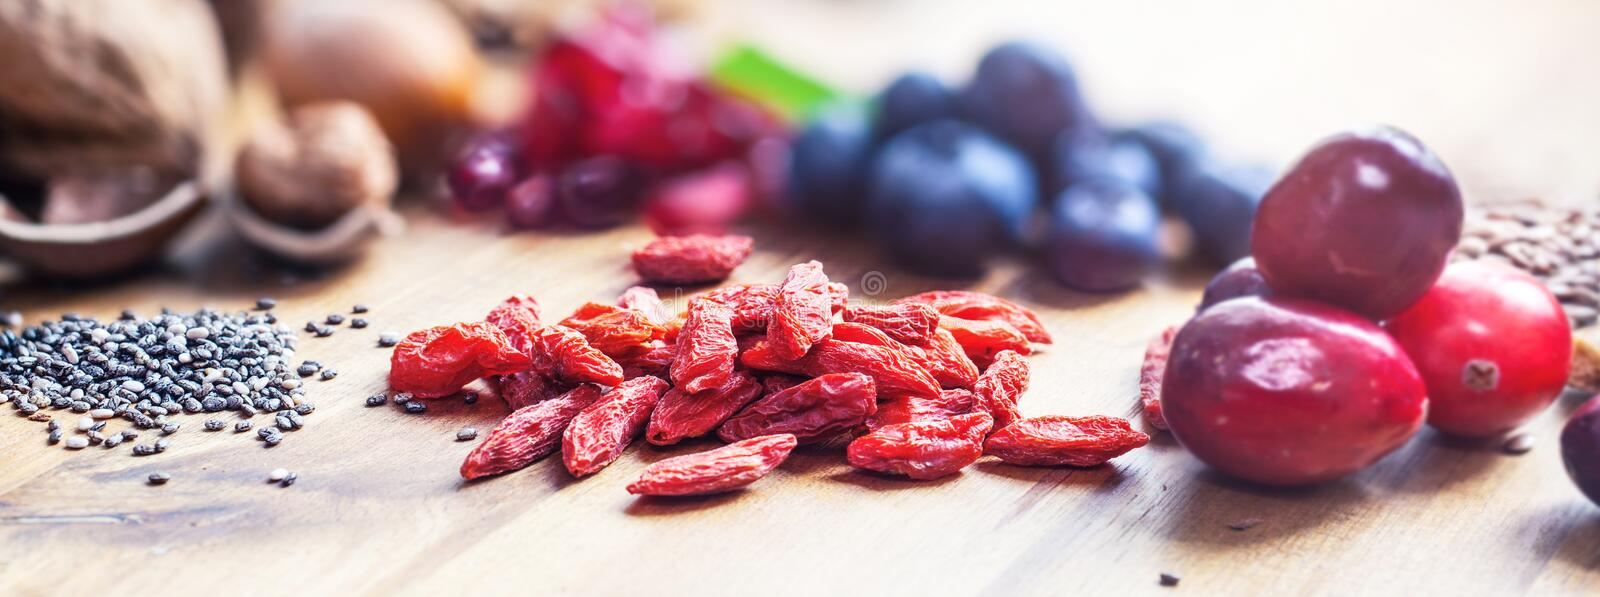 Healthy Superfood stock photography